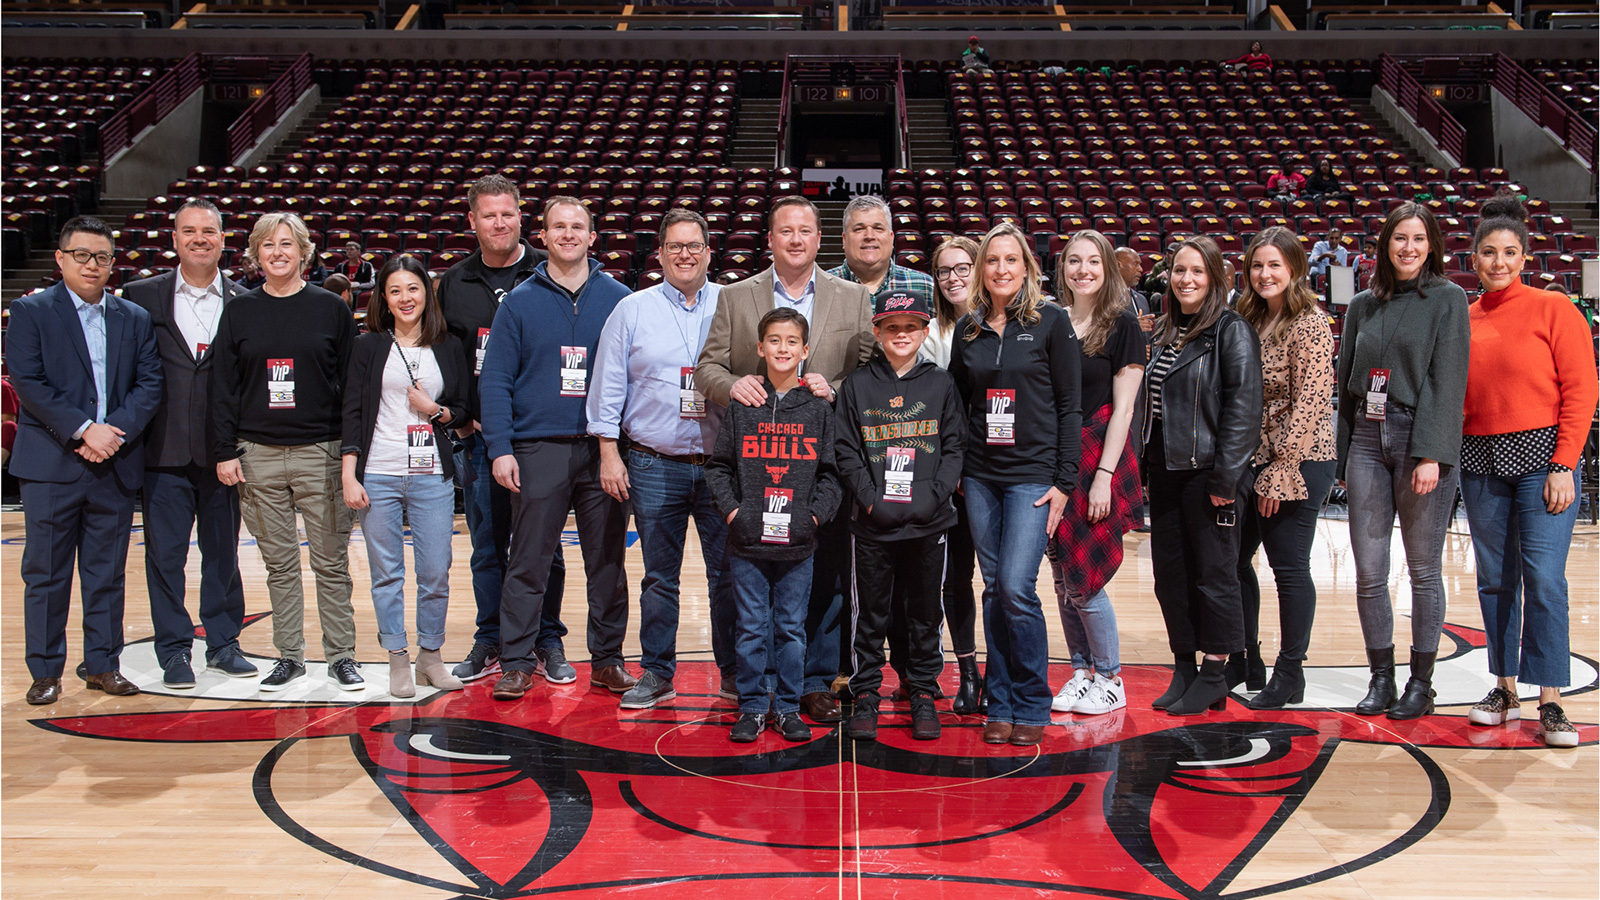 Fans taking a photo on the Bulls center court